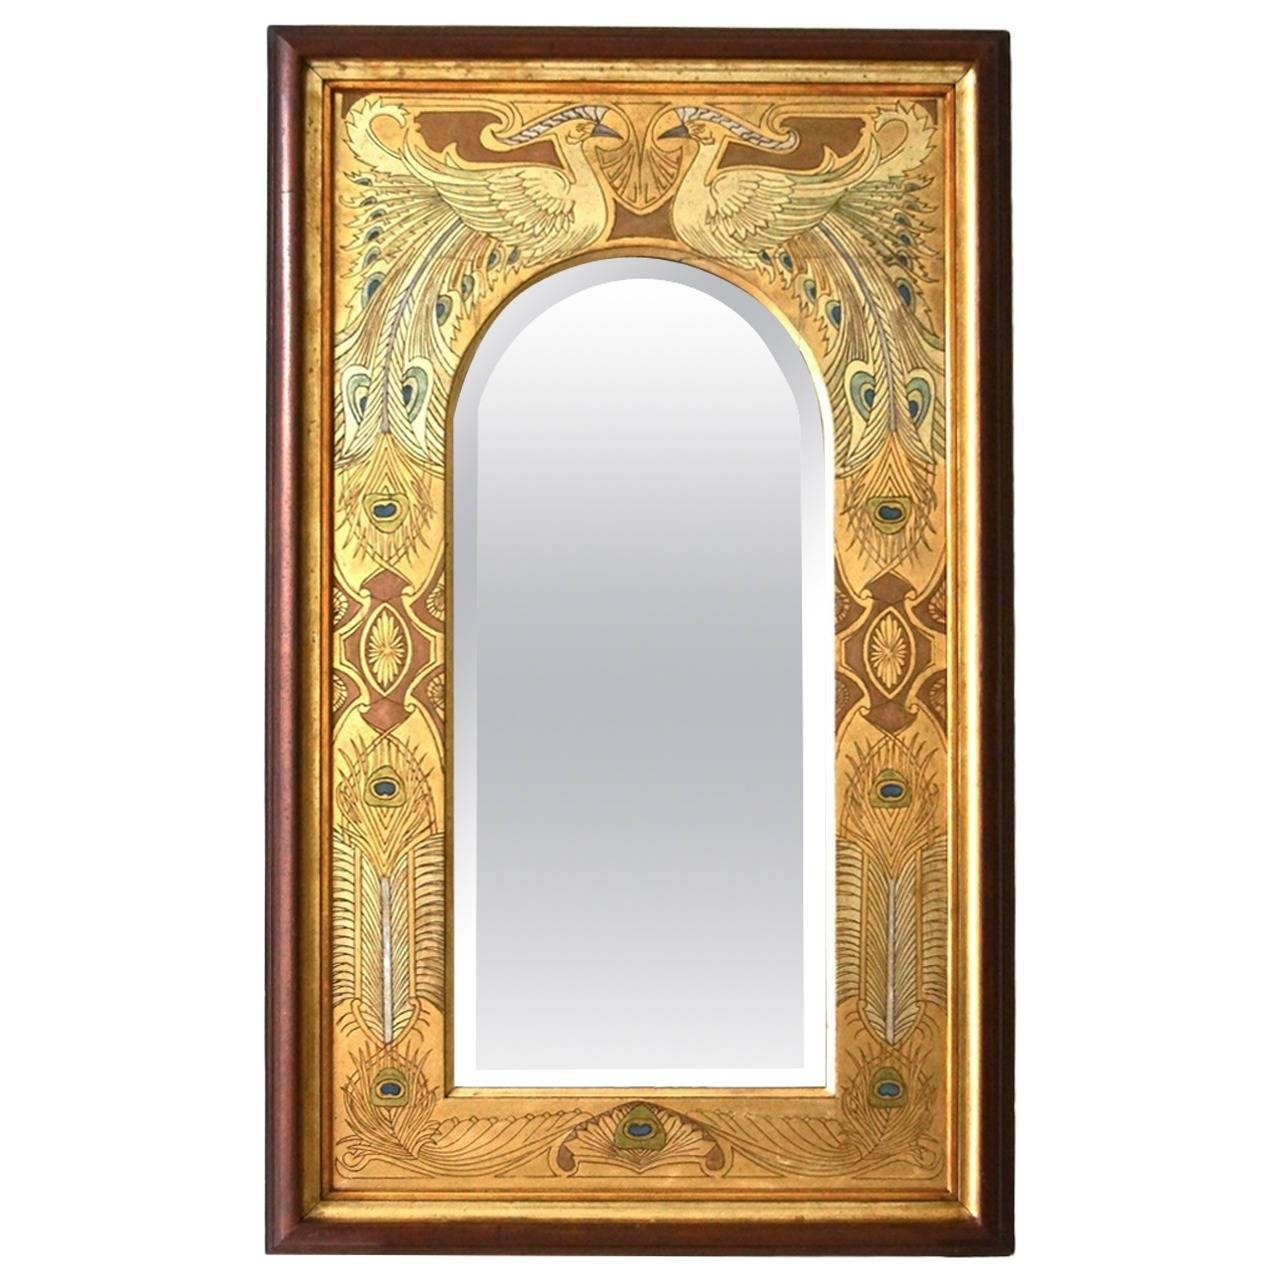 Art Nouveau Wall Mirrors - 53 For Sale At 1Stdibs throughout Art Nouveau Mirrors (Image 13 of 25)